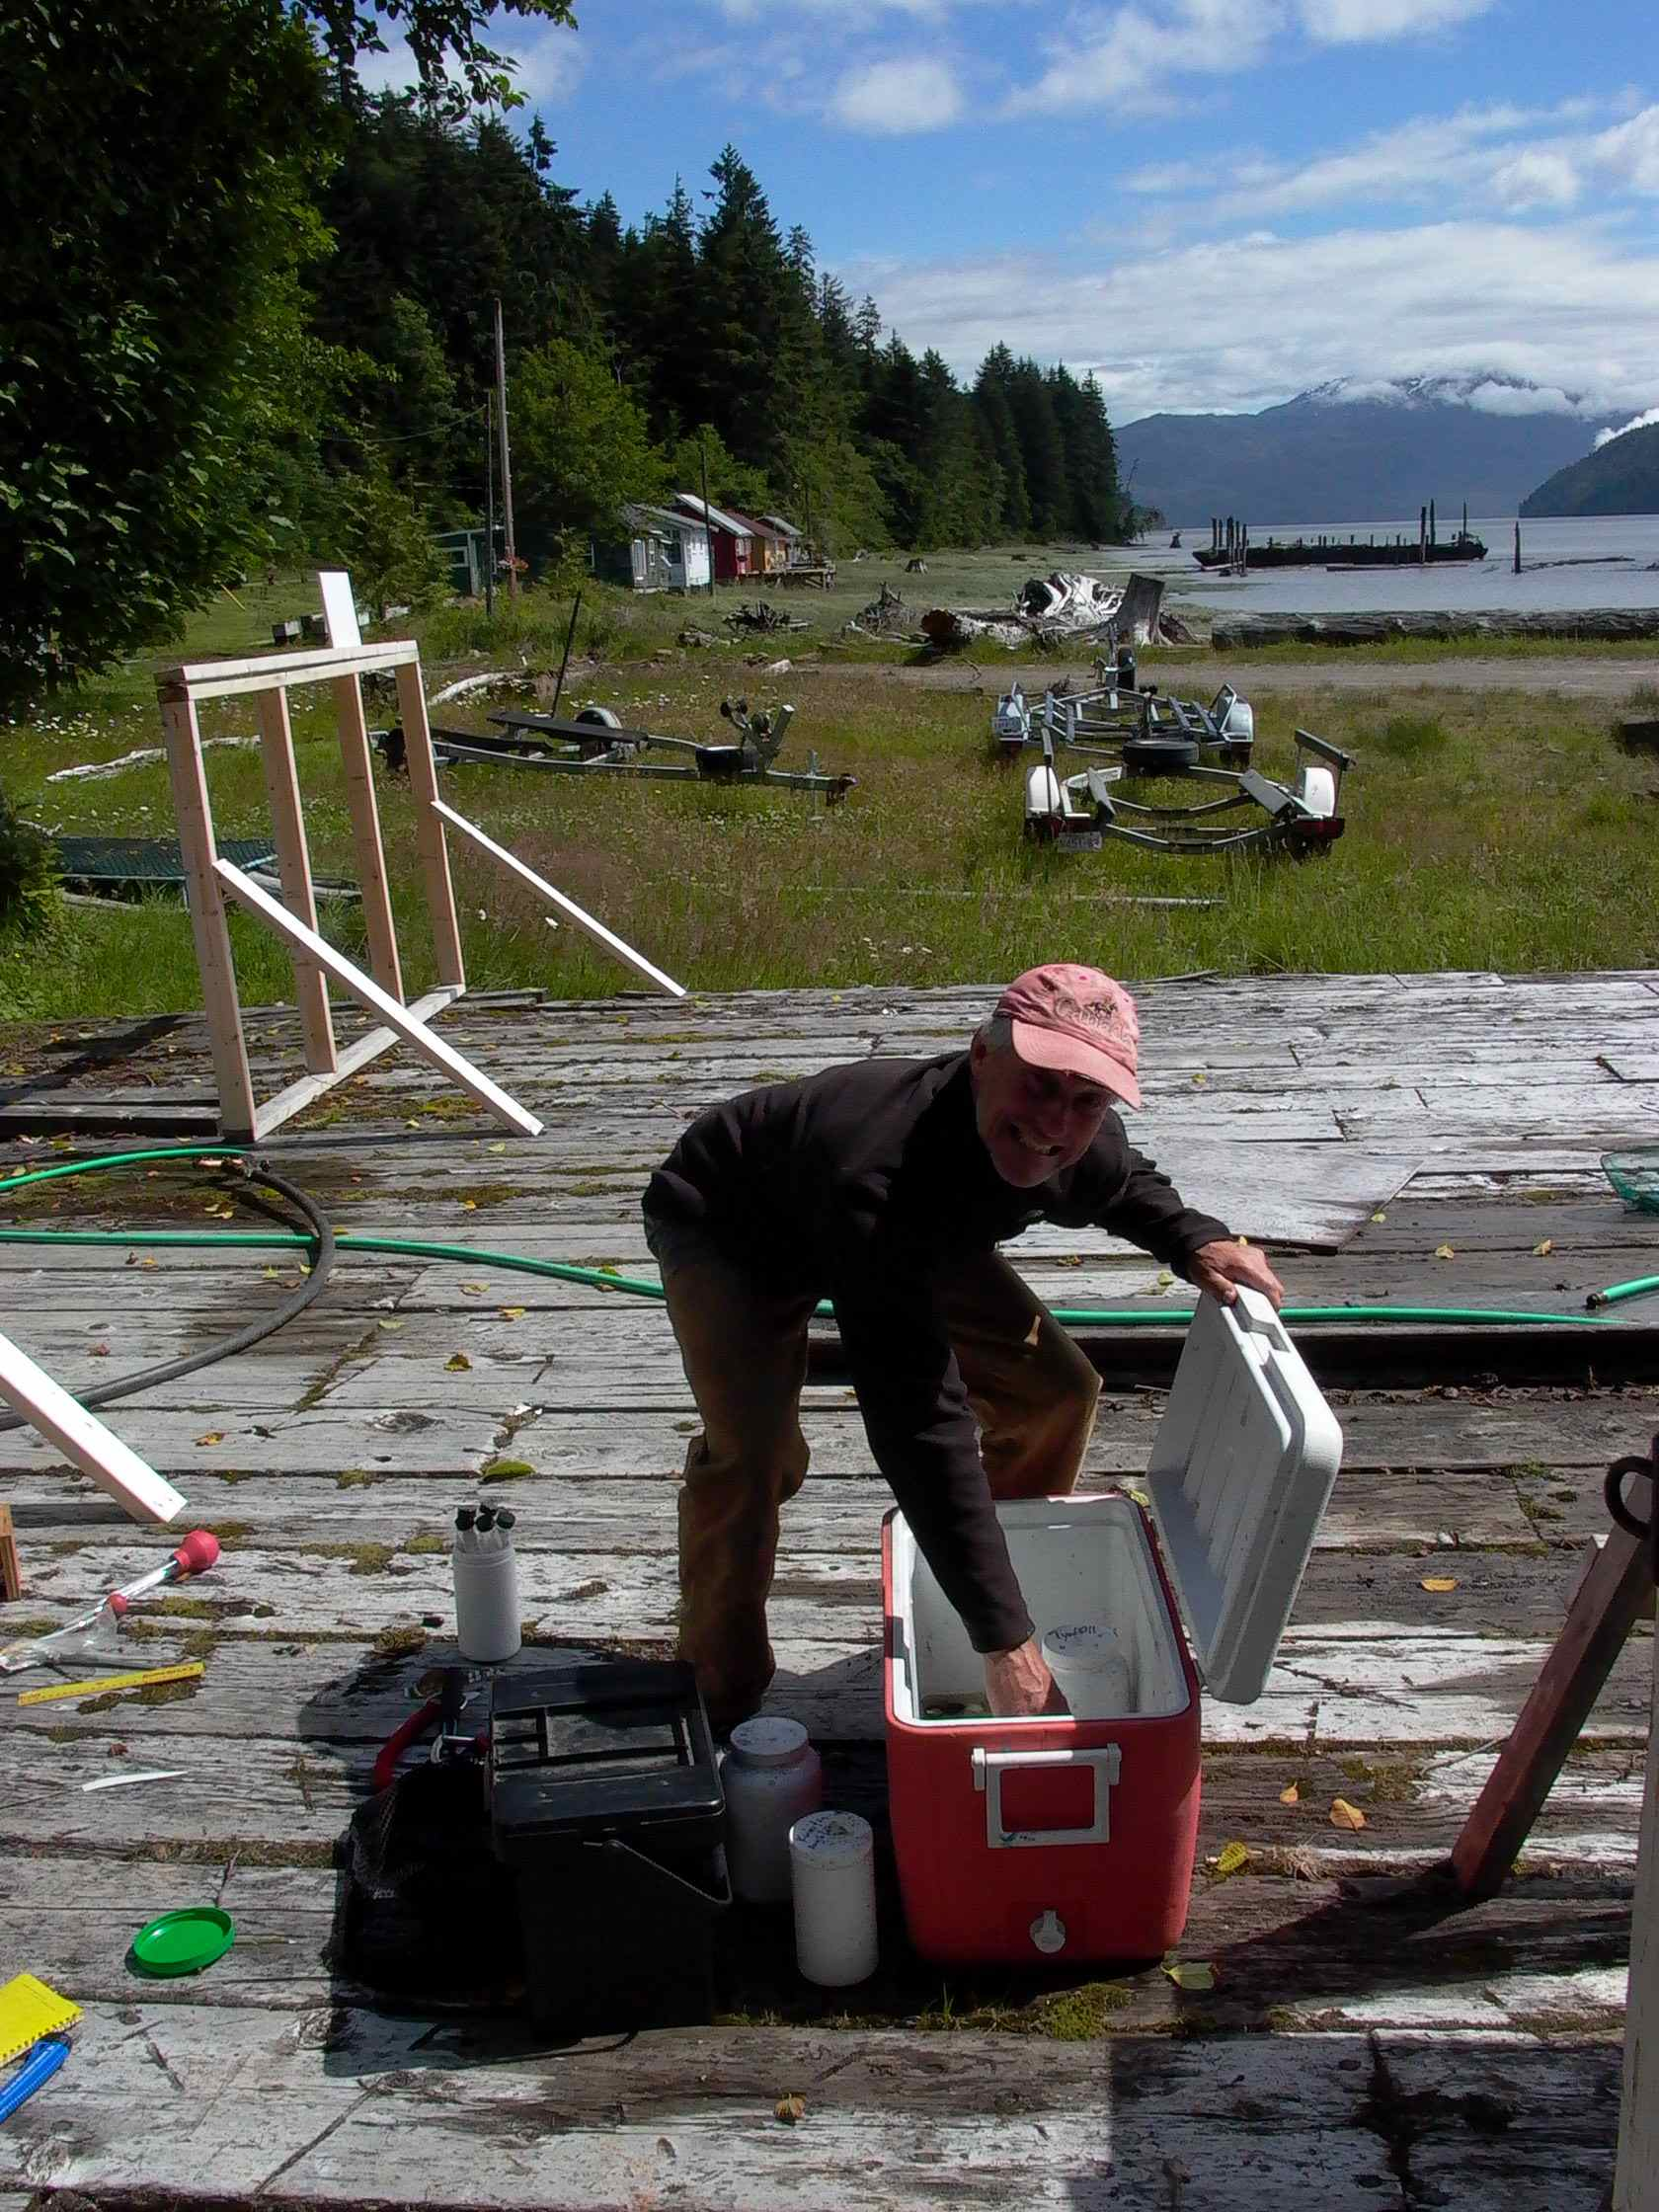 Cassiar Cannery - SERC - MB - JK - 2011/2012 - setting up the samples